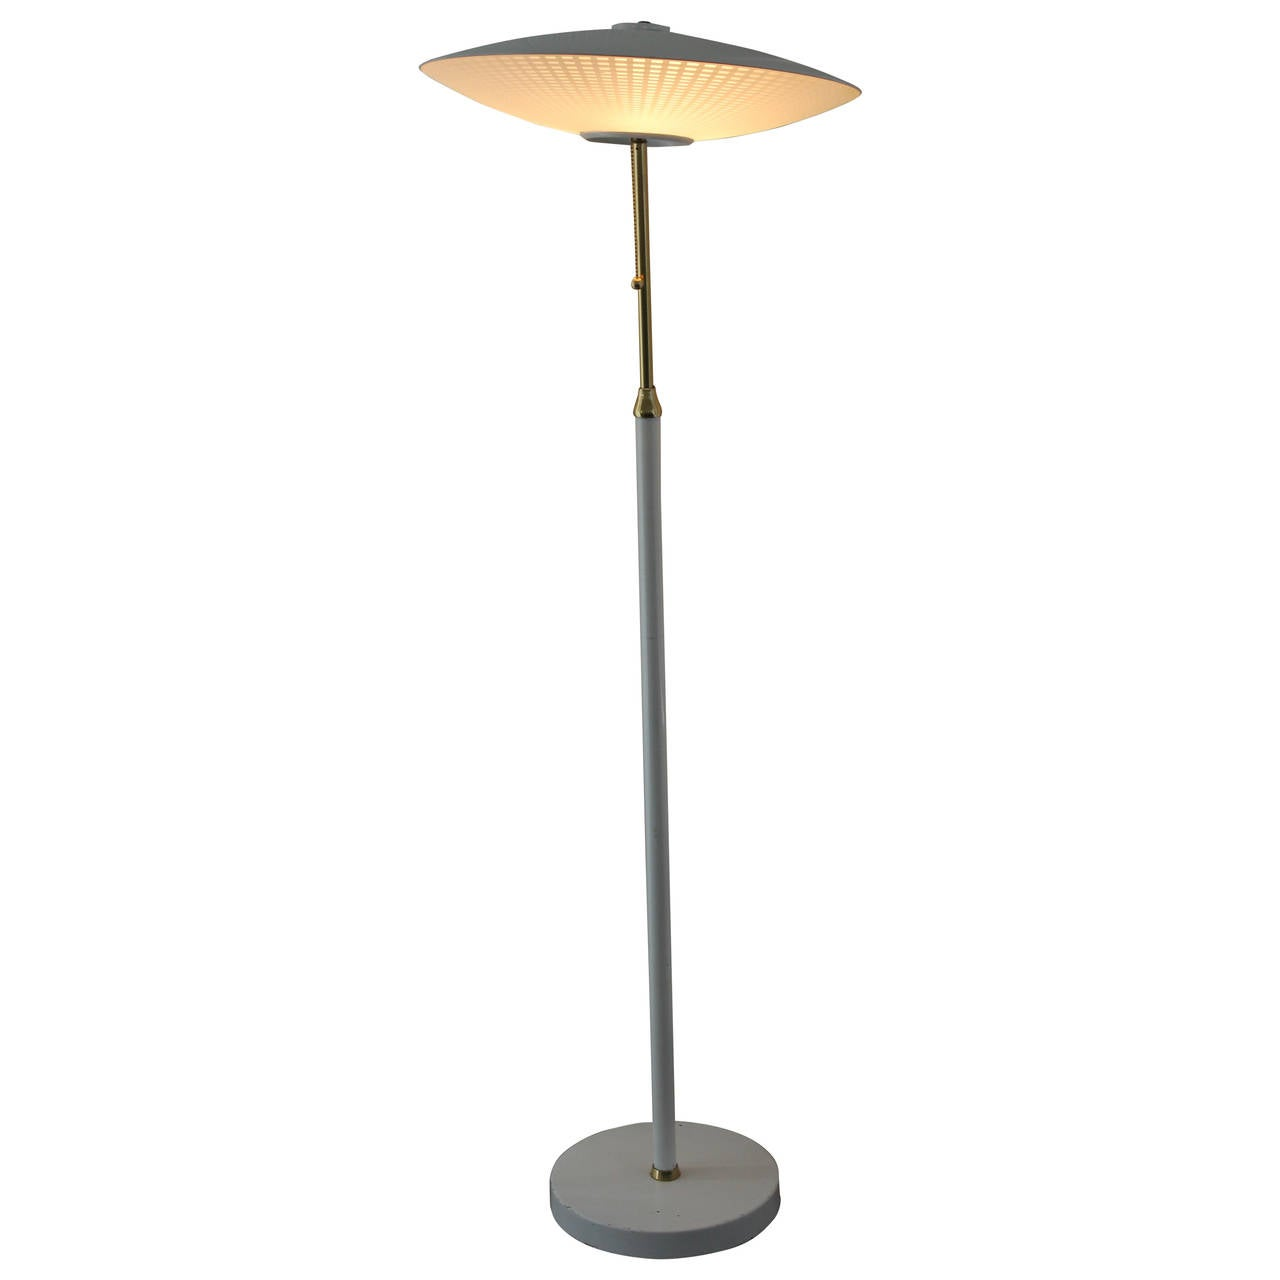 1950s marbro flying saucer floor lamp for sale at 1stdibs 1950s marbro flying saucer floor lamp 1 arubaitofo Images